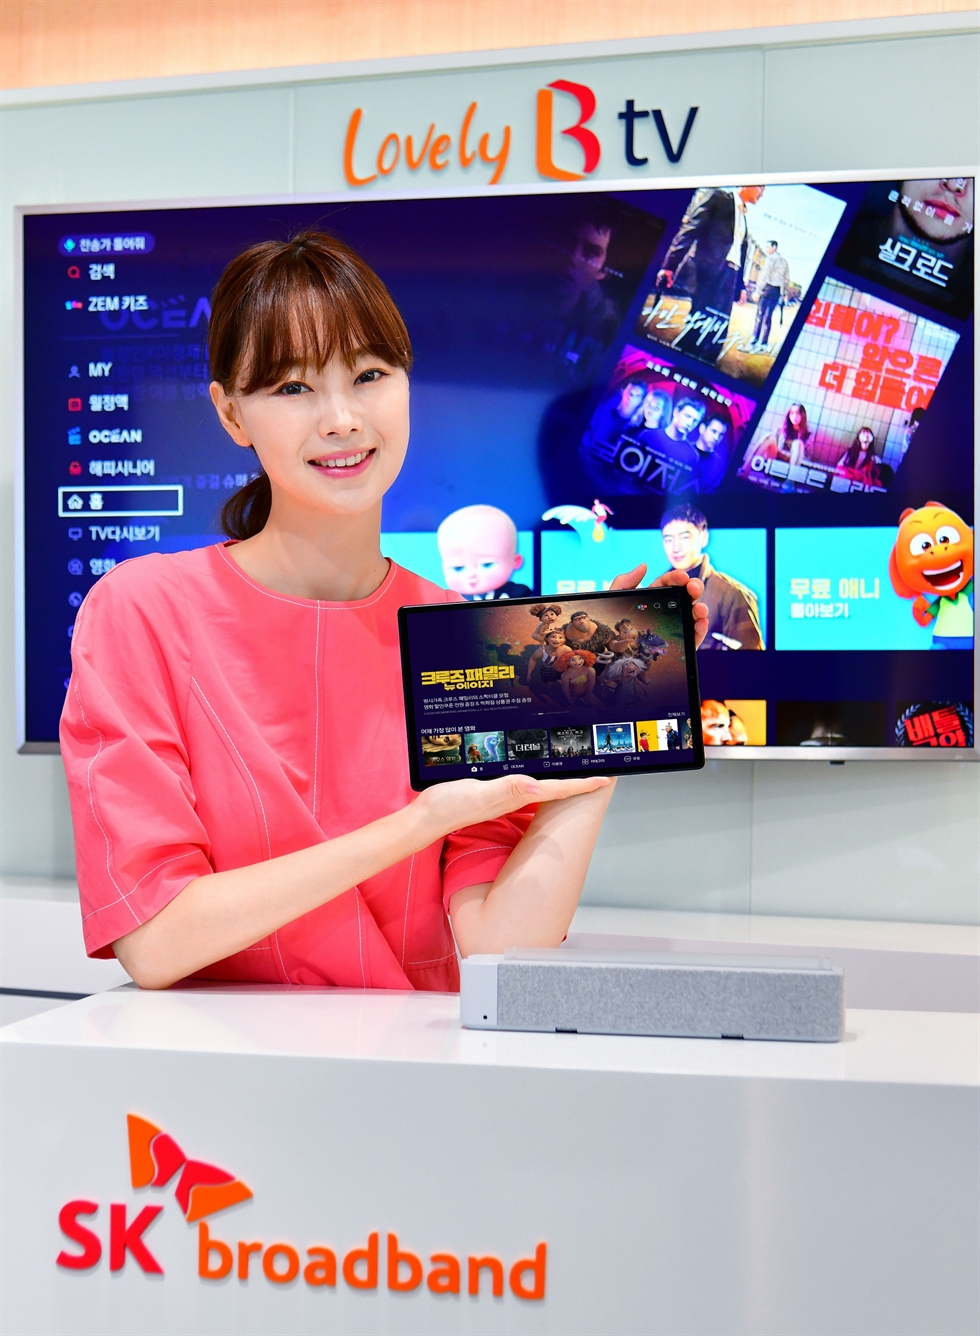 A model watches a video using SK Broadband's tablet PC-based IPTV service B tv air in this photo provided by the company, Tuesday. Courtesy of SK Broadband